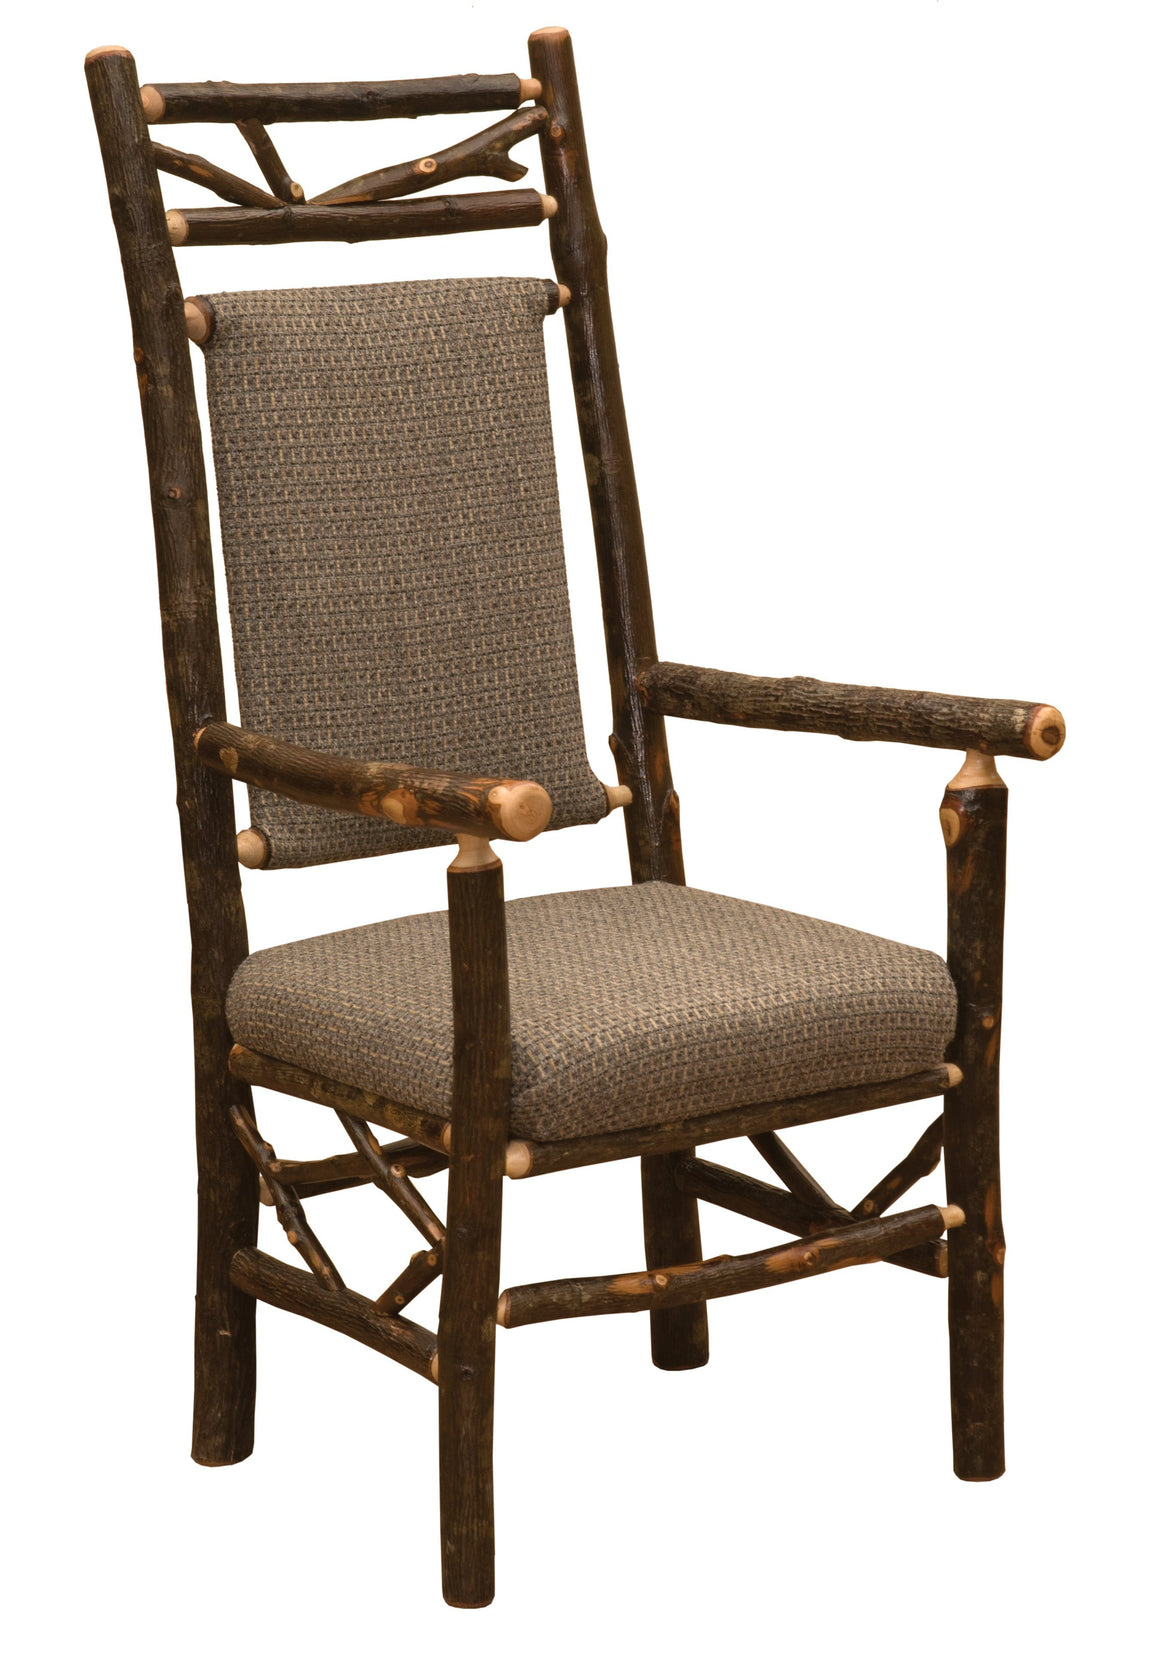 Natural Hickory Log Twig Upholstered Back Arm Chair - Upholstered Seat - Standard Finish Chair Fireside Lodge Customer's Own Material